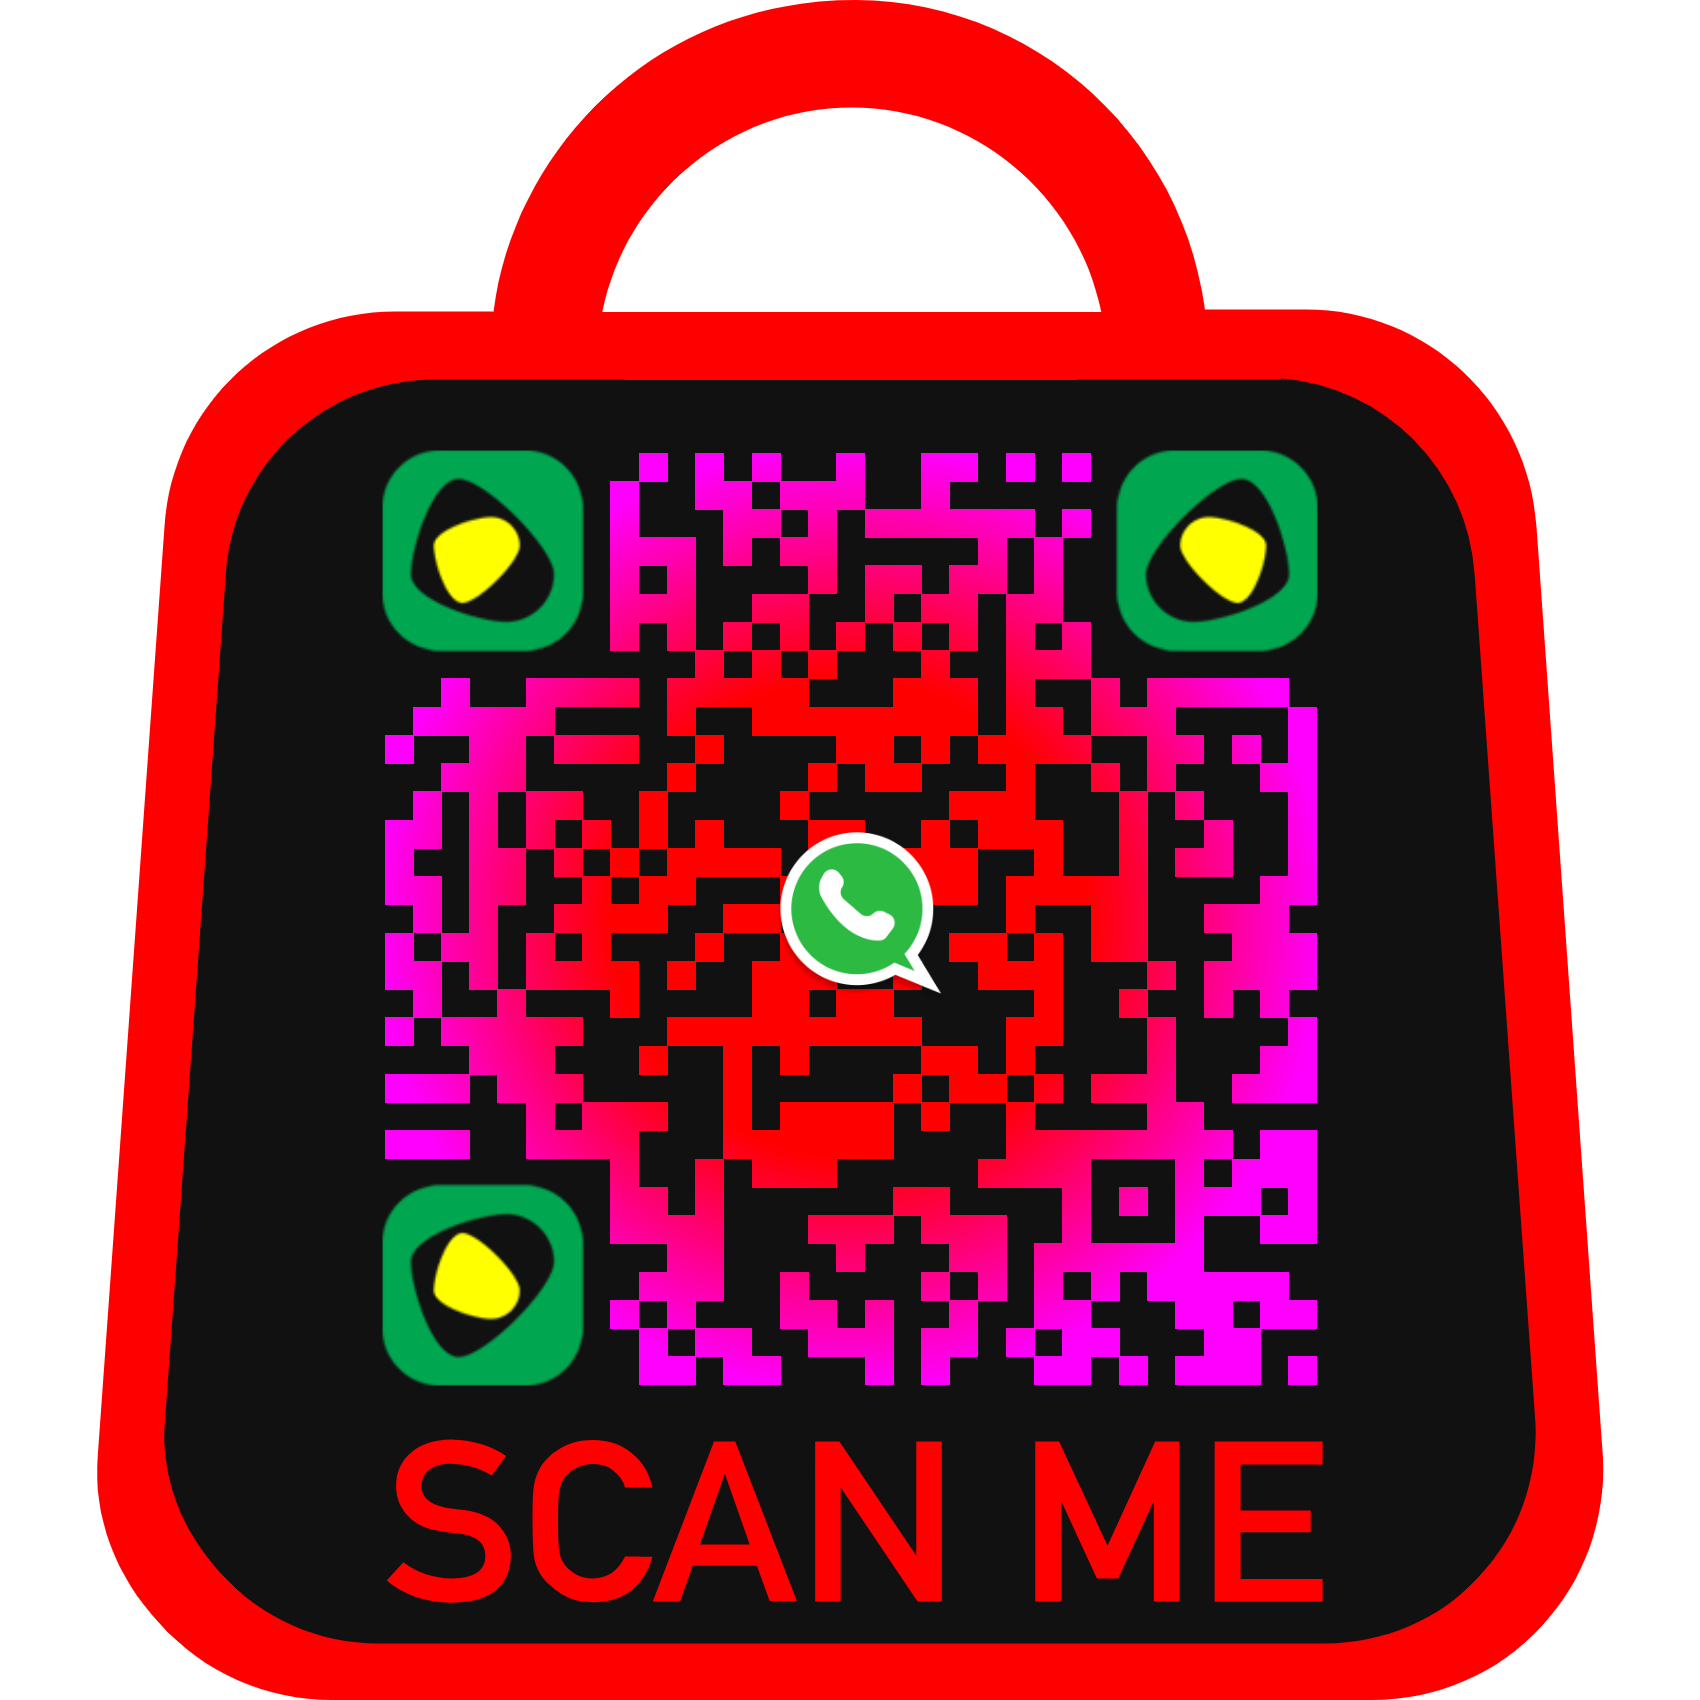 Most attracted QR CODE design for your brand.